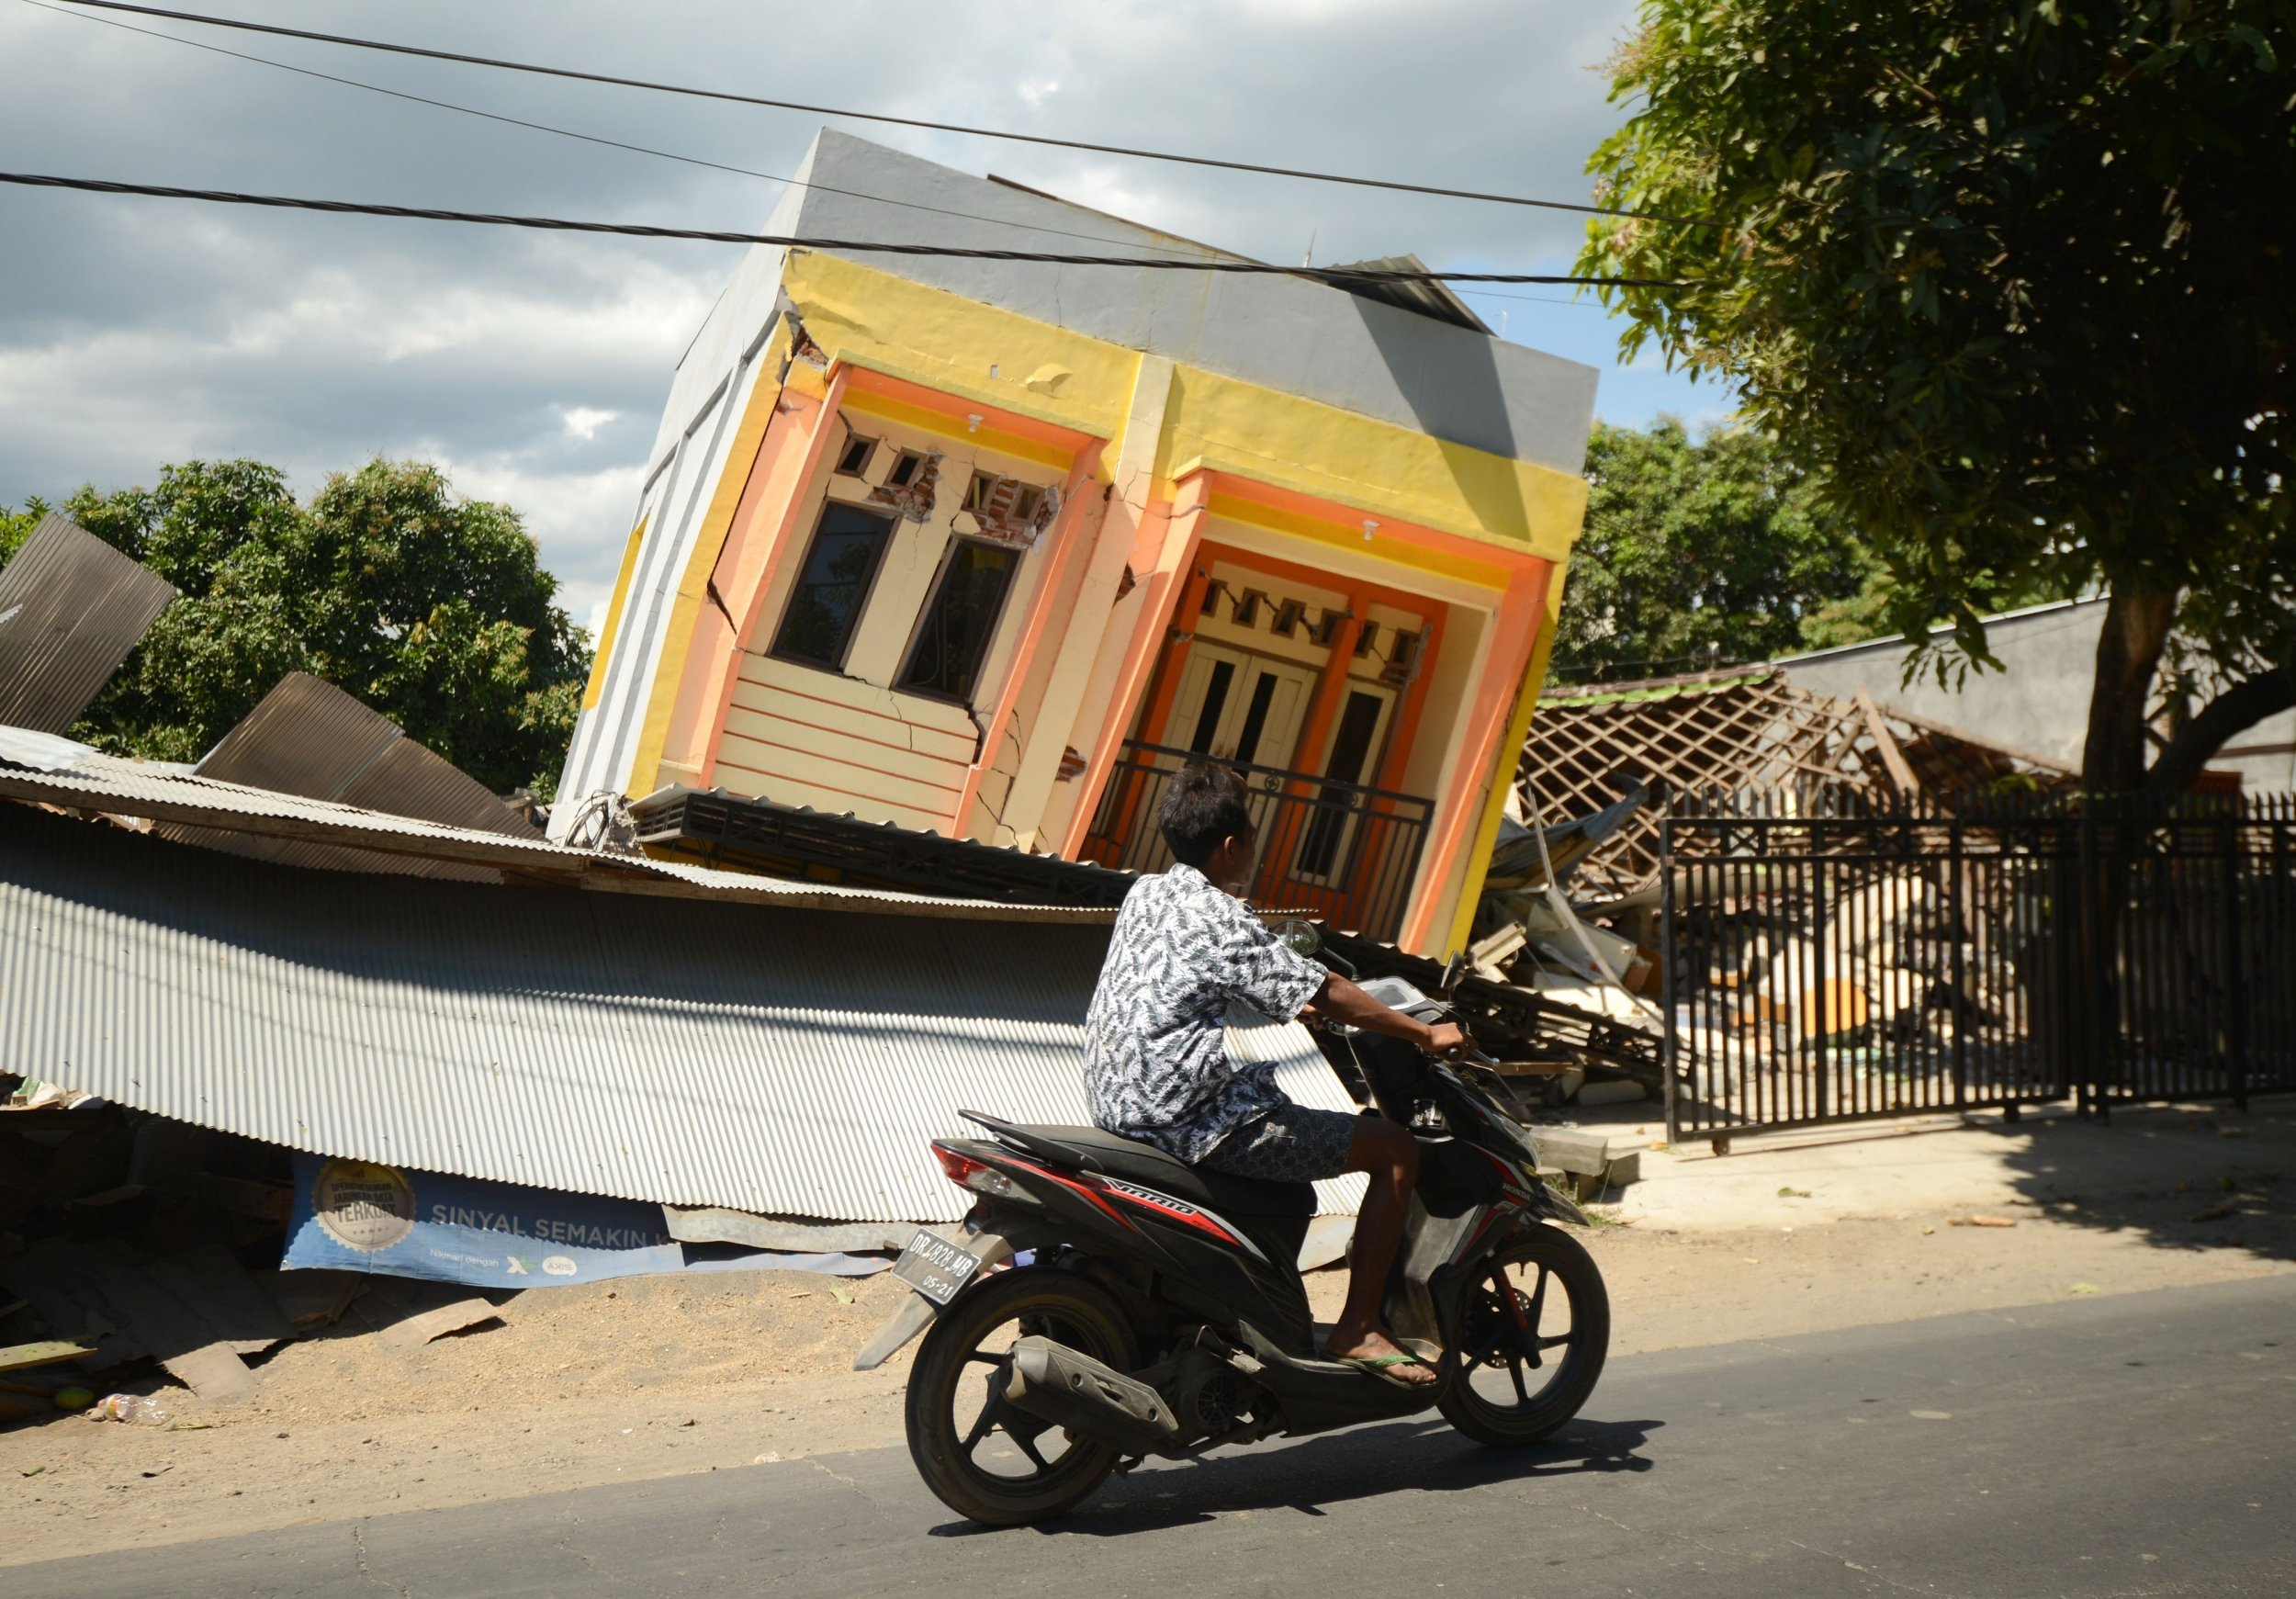 After the devastating earthquake, Indonesia must embrace radical change